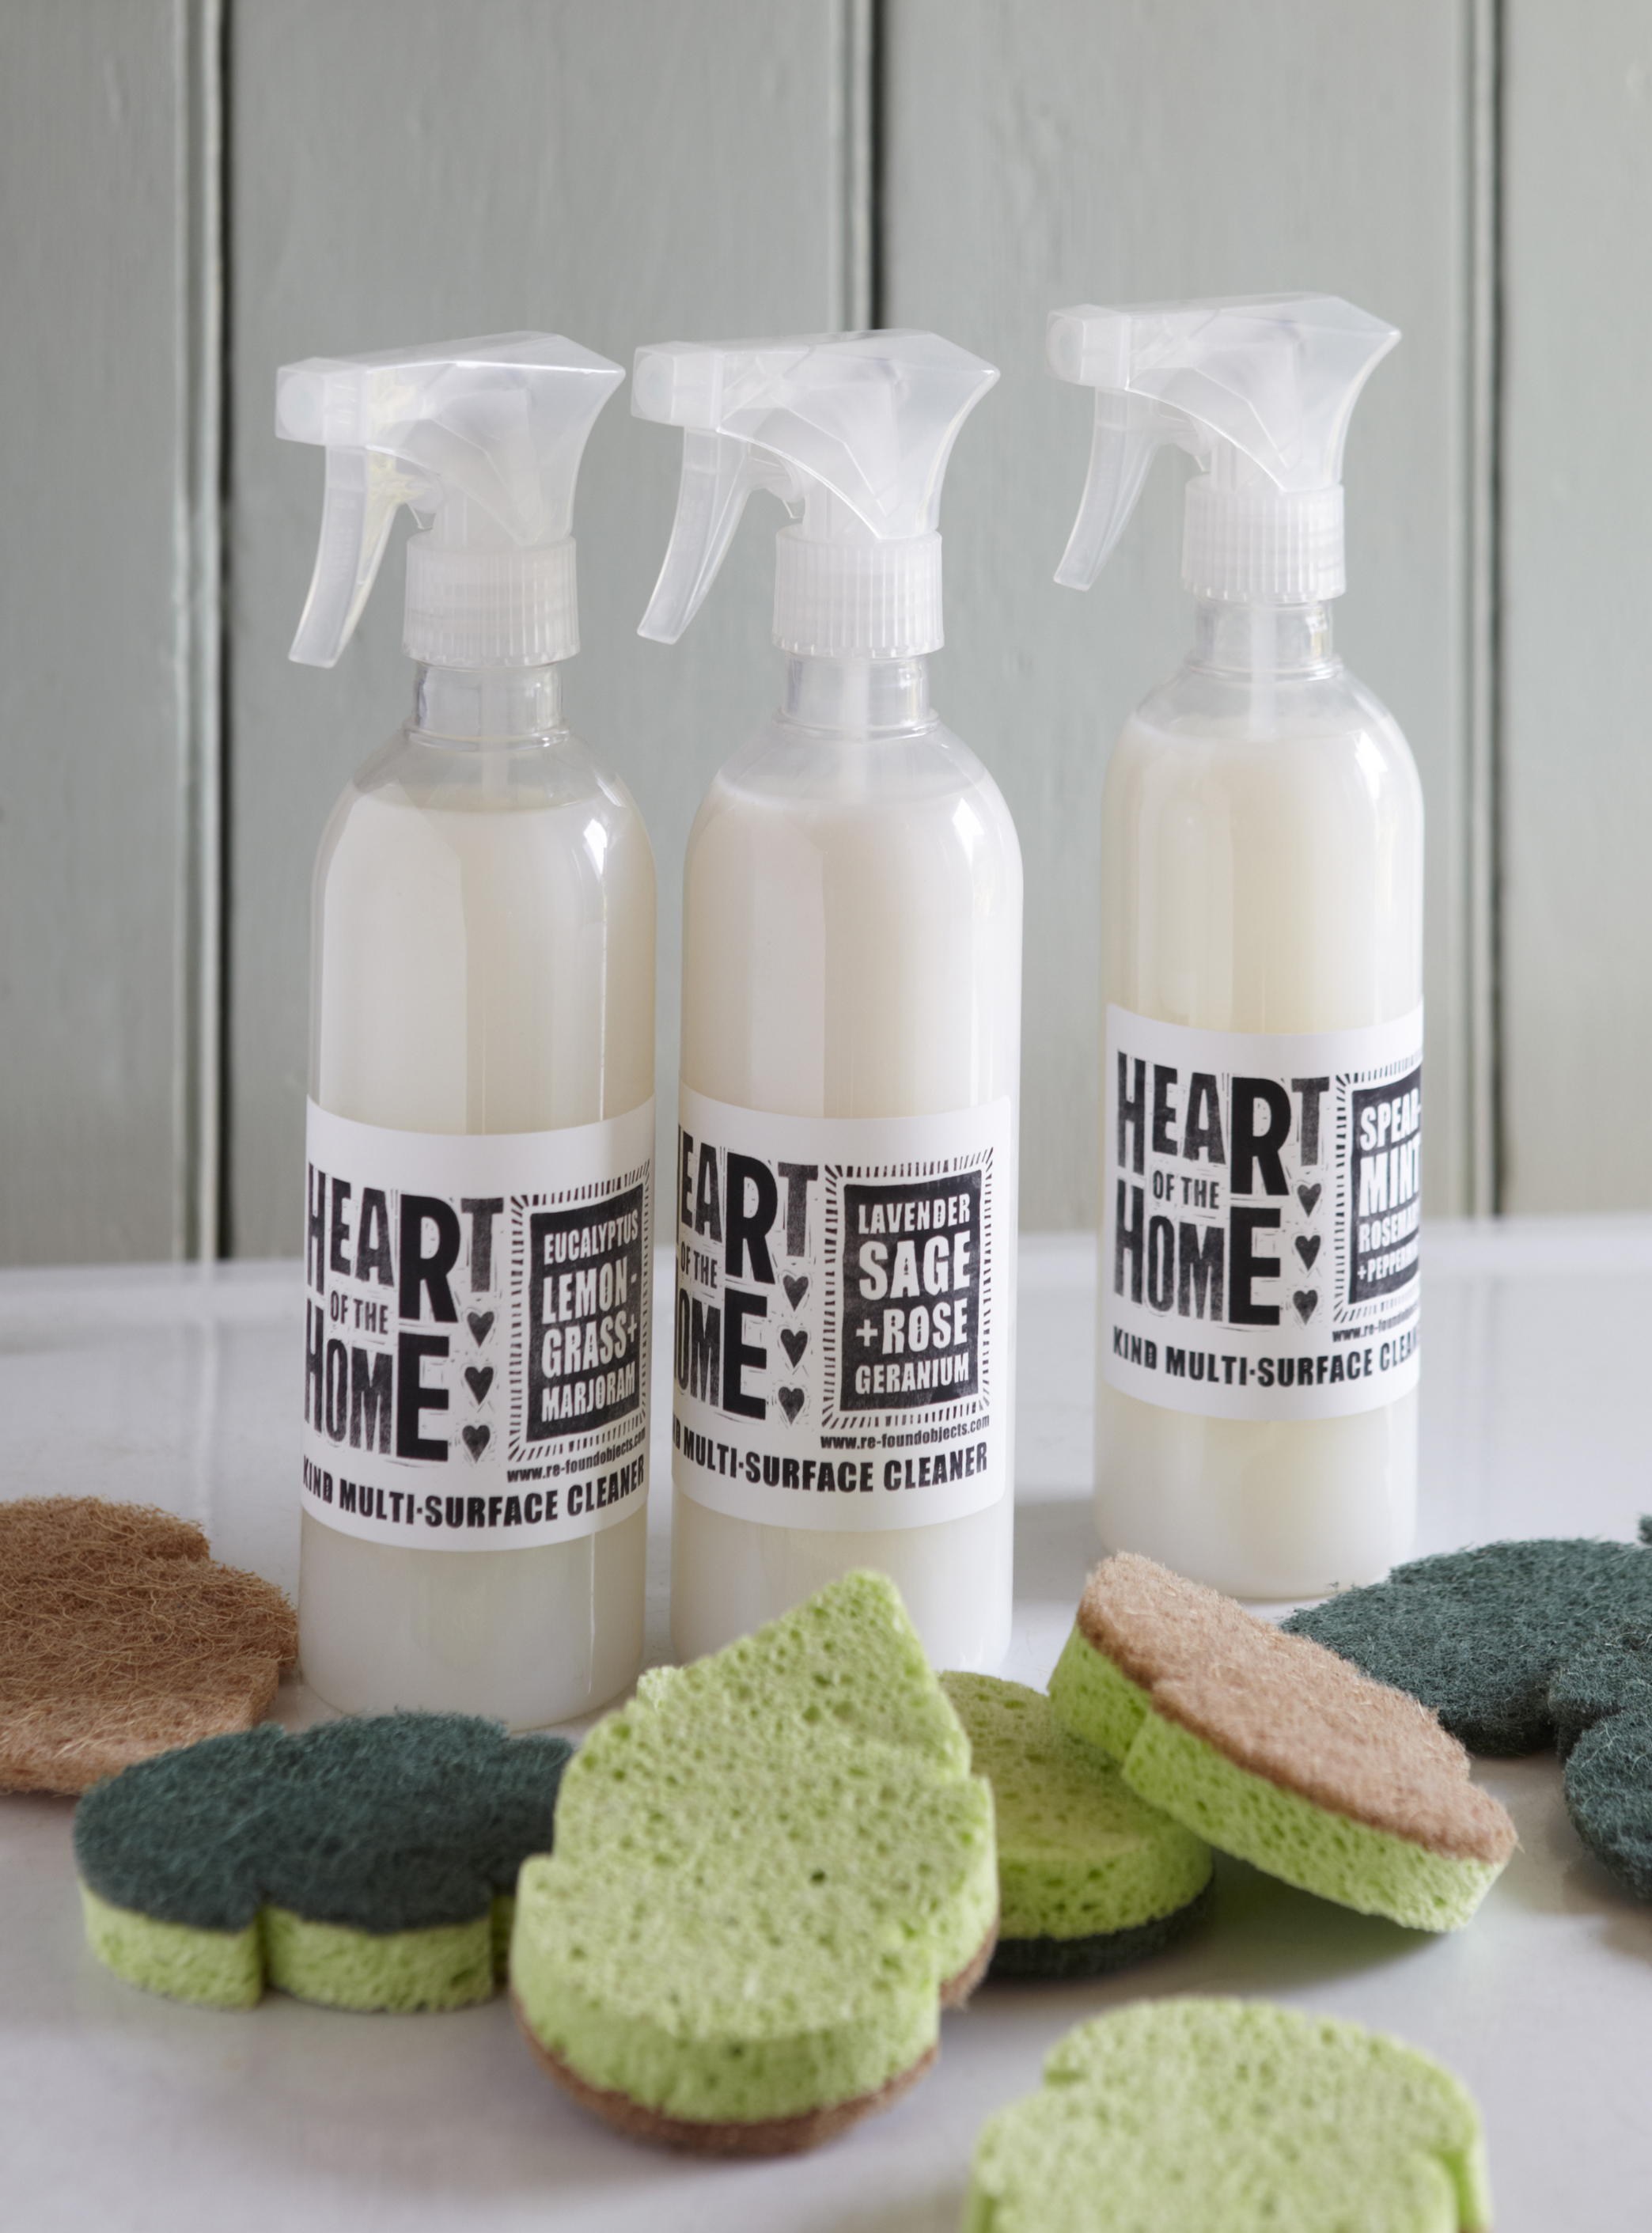 Heart Of The Home Eco Cleaner, 100% natural, vegan, biodegradable and hypo-allergenic. Available in three essential oil fragances: Spearmint Rosemary and Peppermint Lavender, Sage and Rose Geranium Eucalyptus, Lemongrass and Marjoram, from £8.50, Re For The Home (RE For The Home/PA)